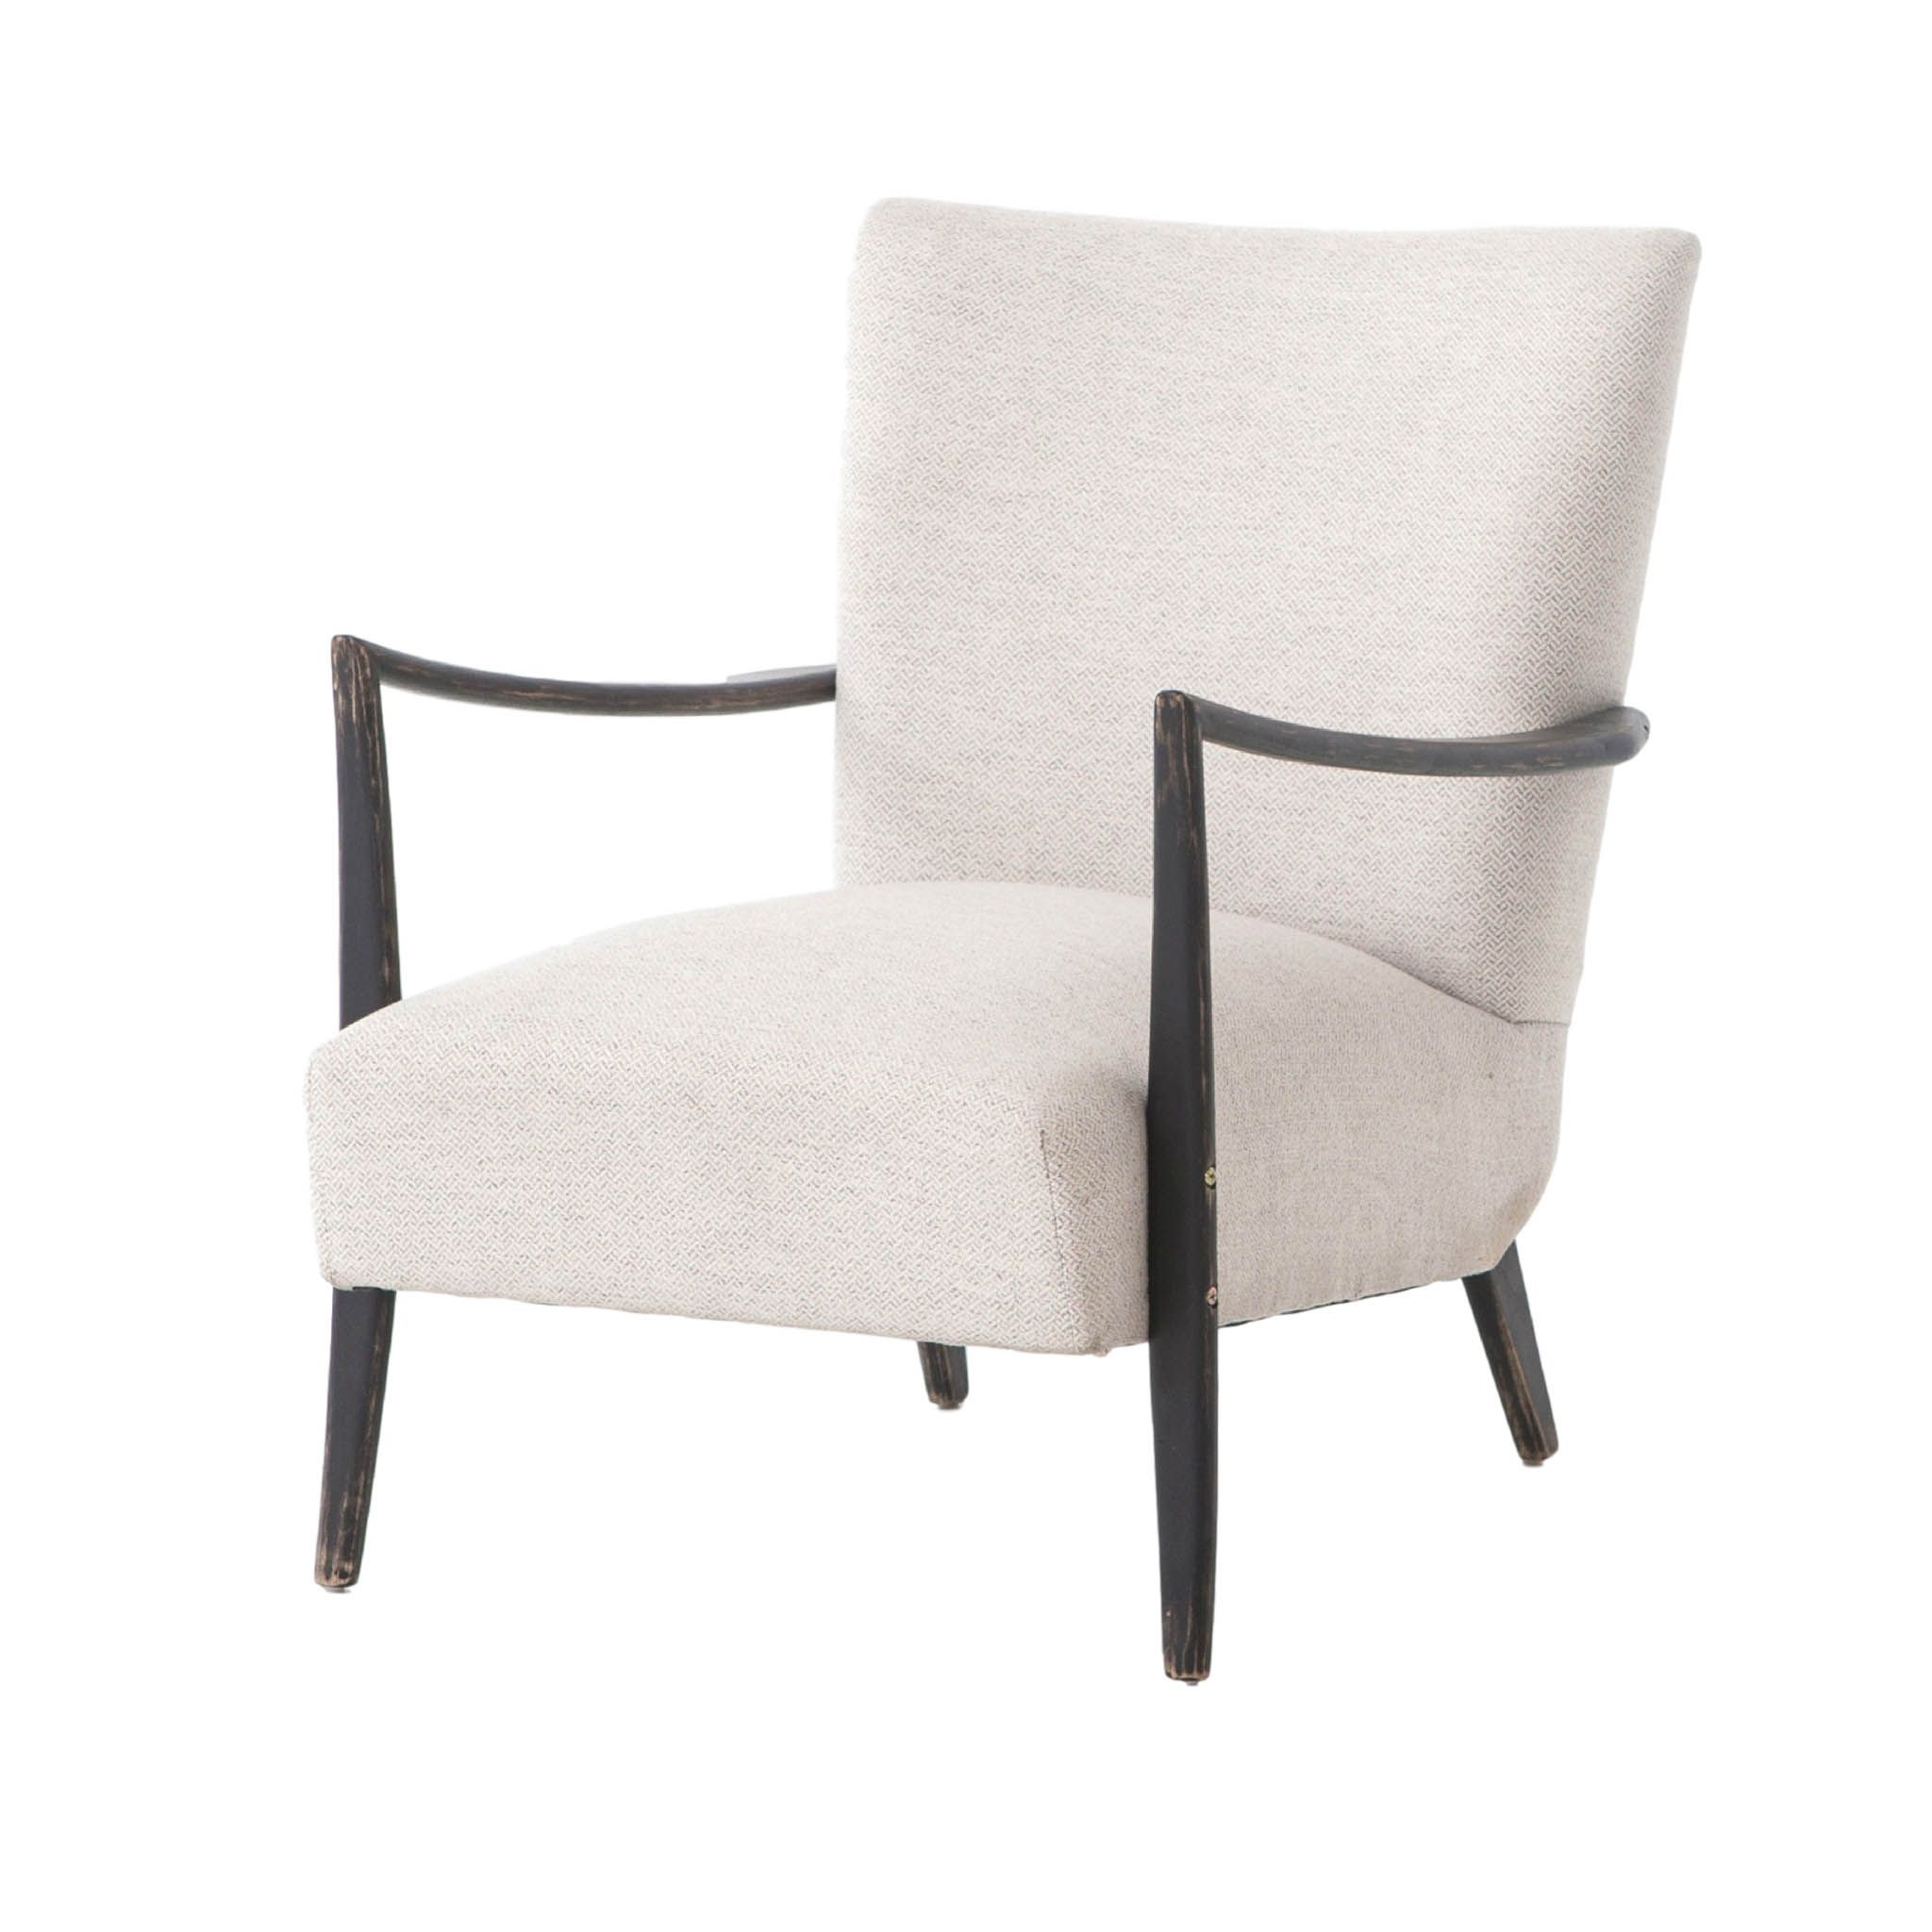 Leland Chair 12th Table Furniture Austin Furniture Store Chair